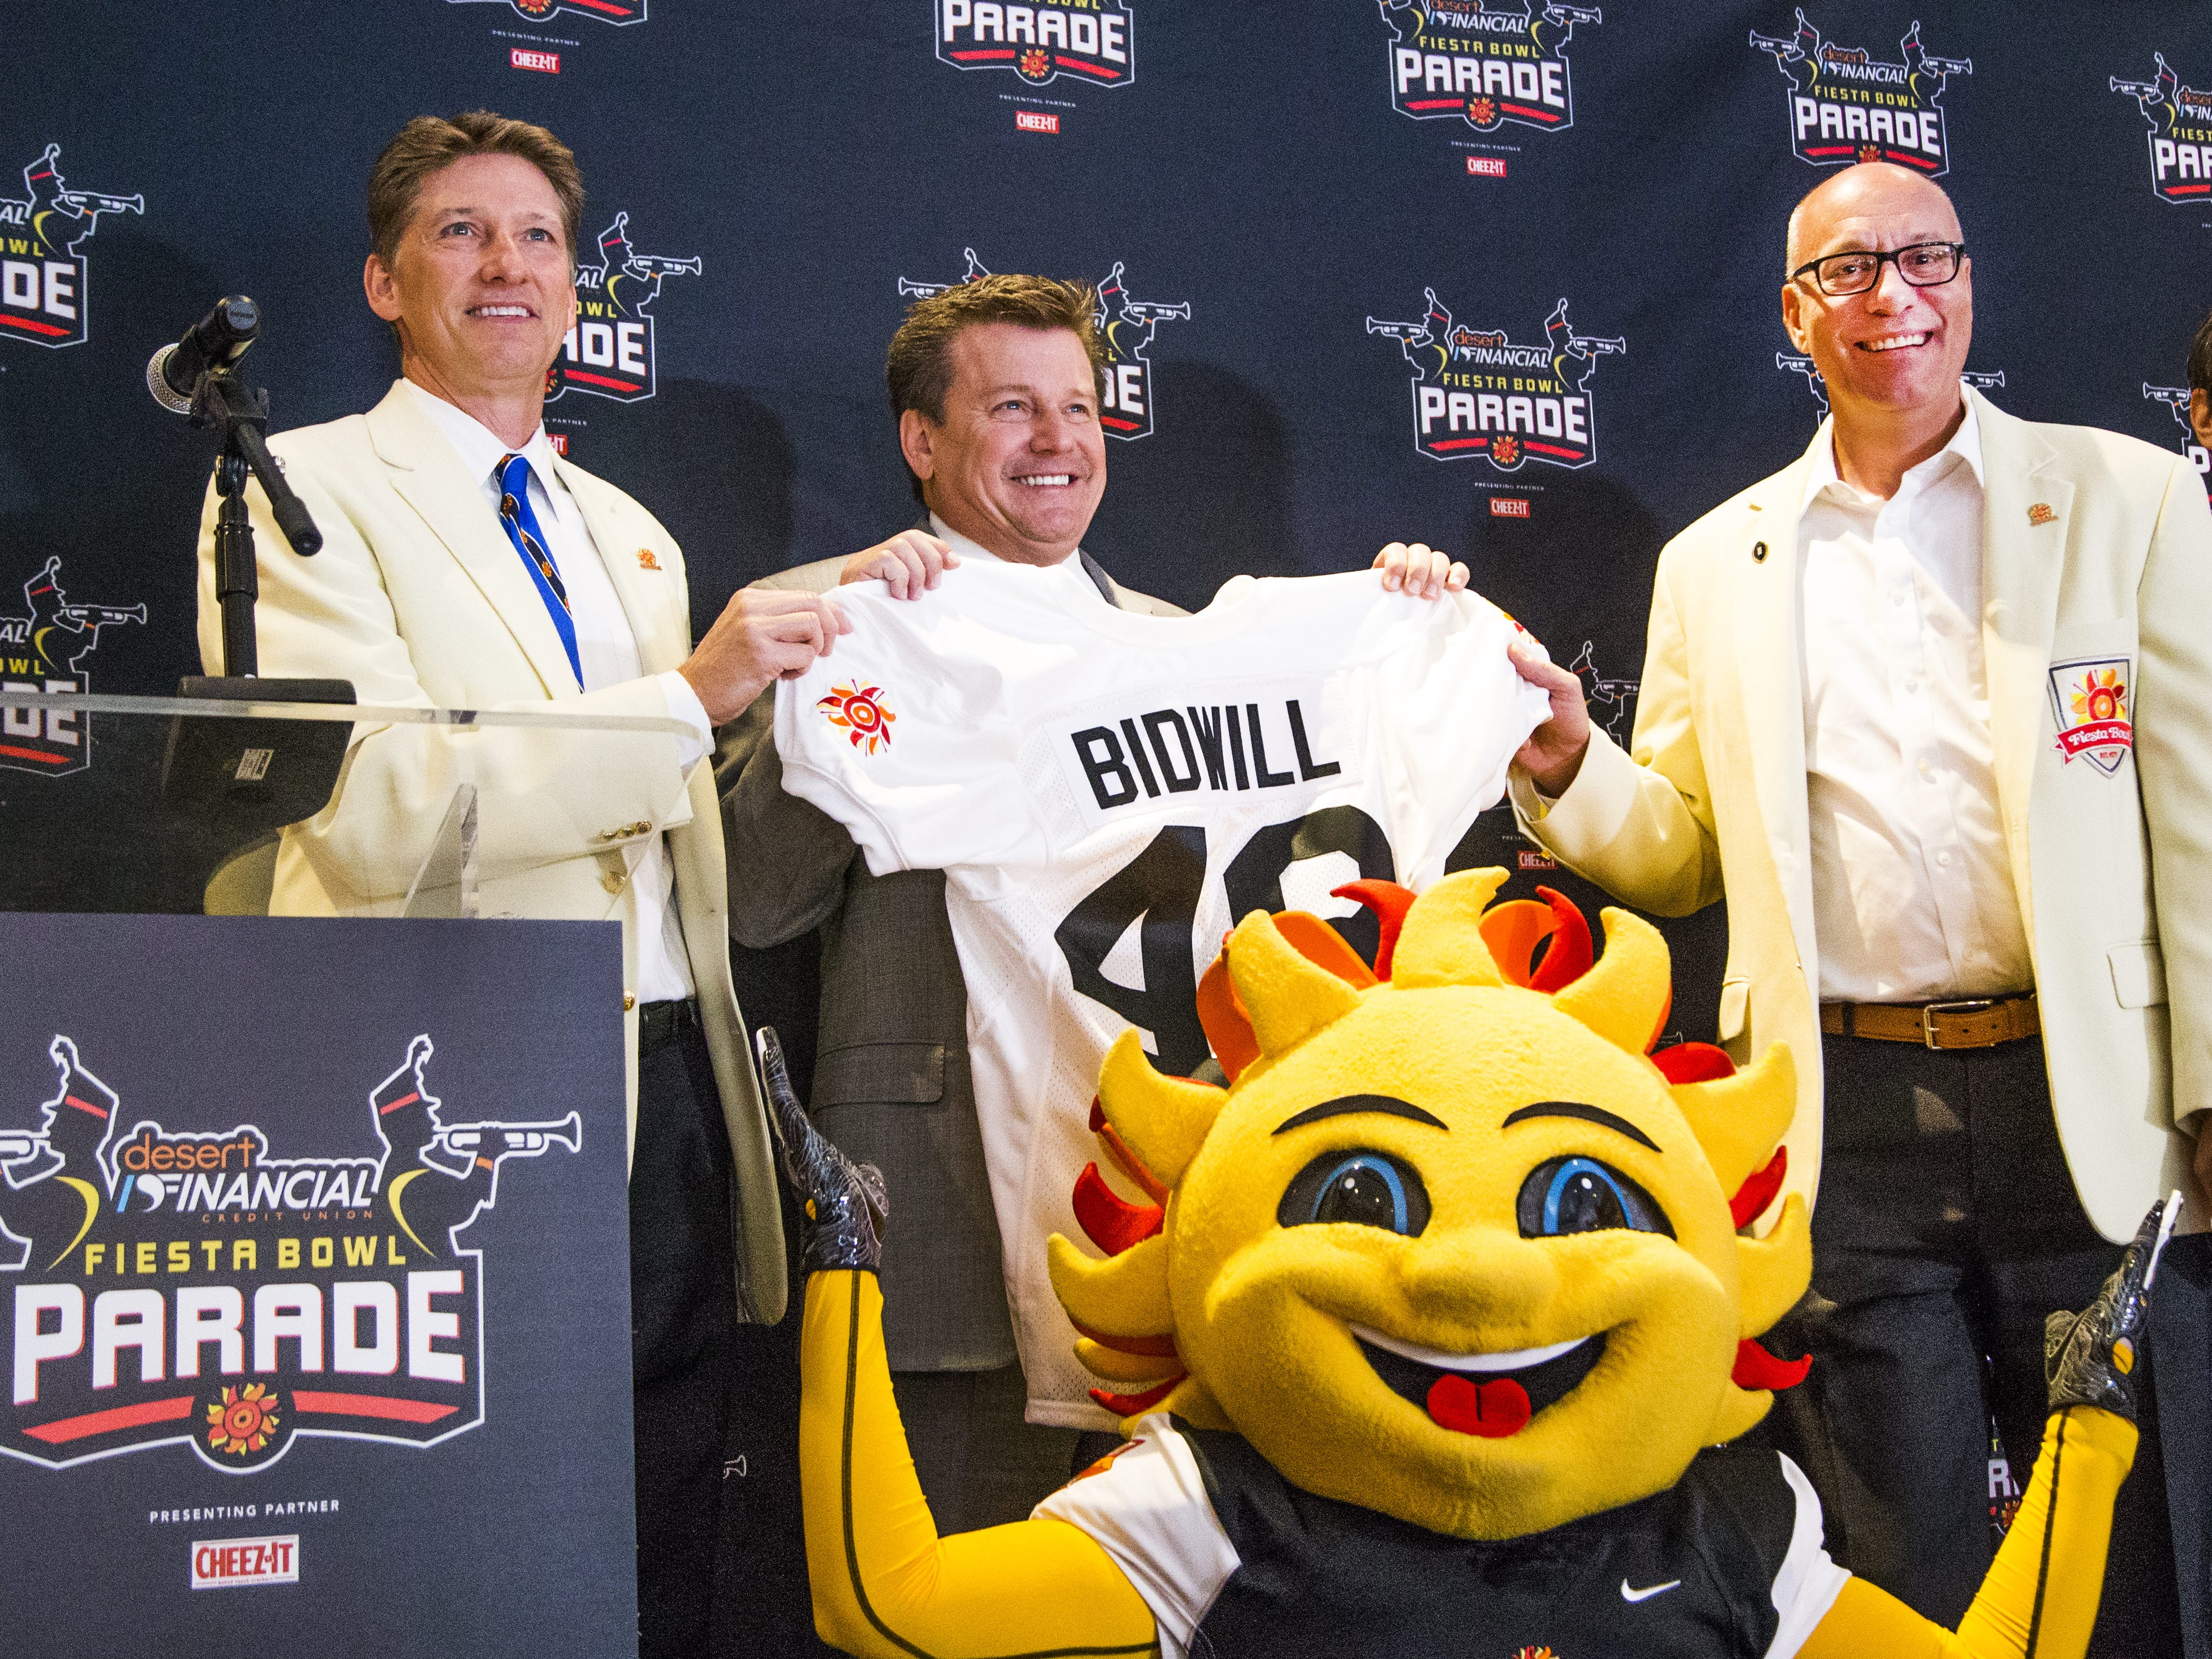 Fiesta Bowl executive director Mike Nealy, left, and chairman of the board Steve Leach, right, present Arizona Cardinals president Michael Bidwill with a jersey after it was announced that Bidwill will be the grand marshal of this year's Fiesta Bowl Parade.